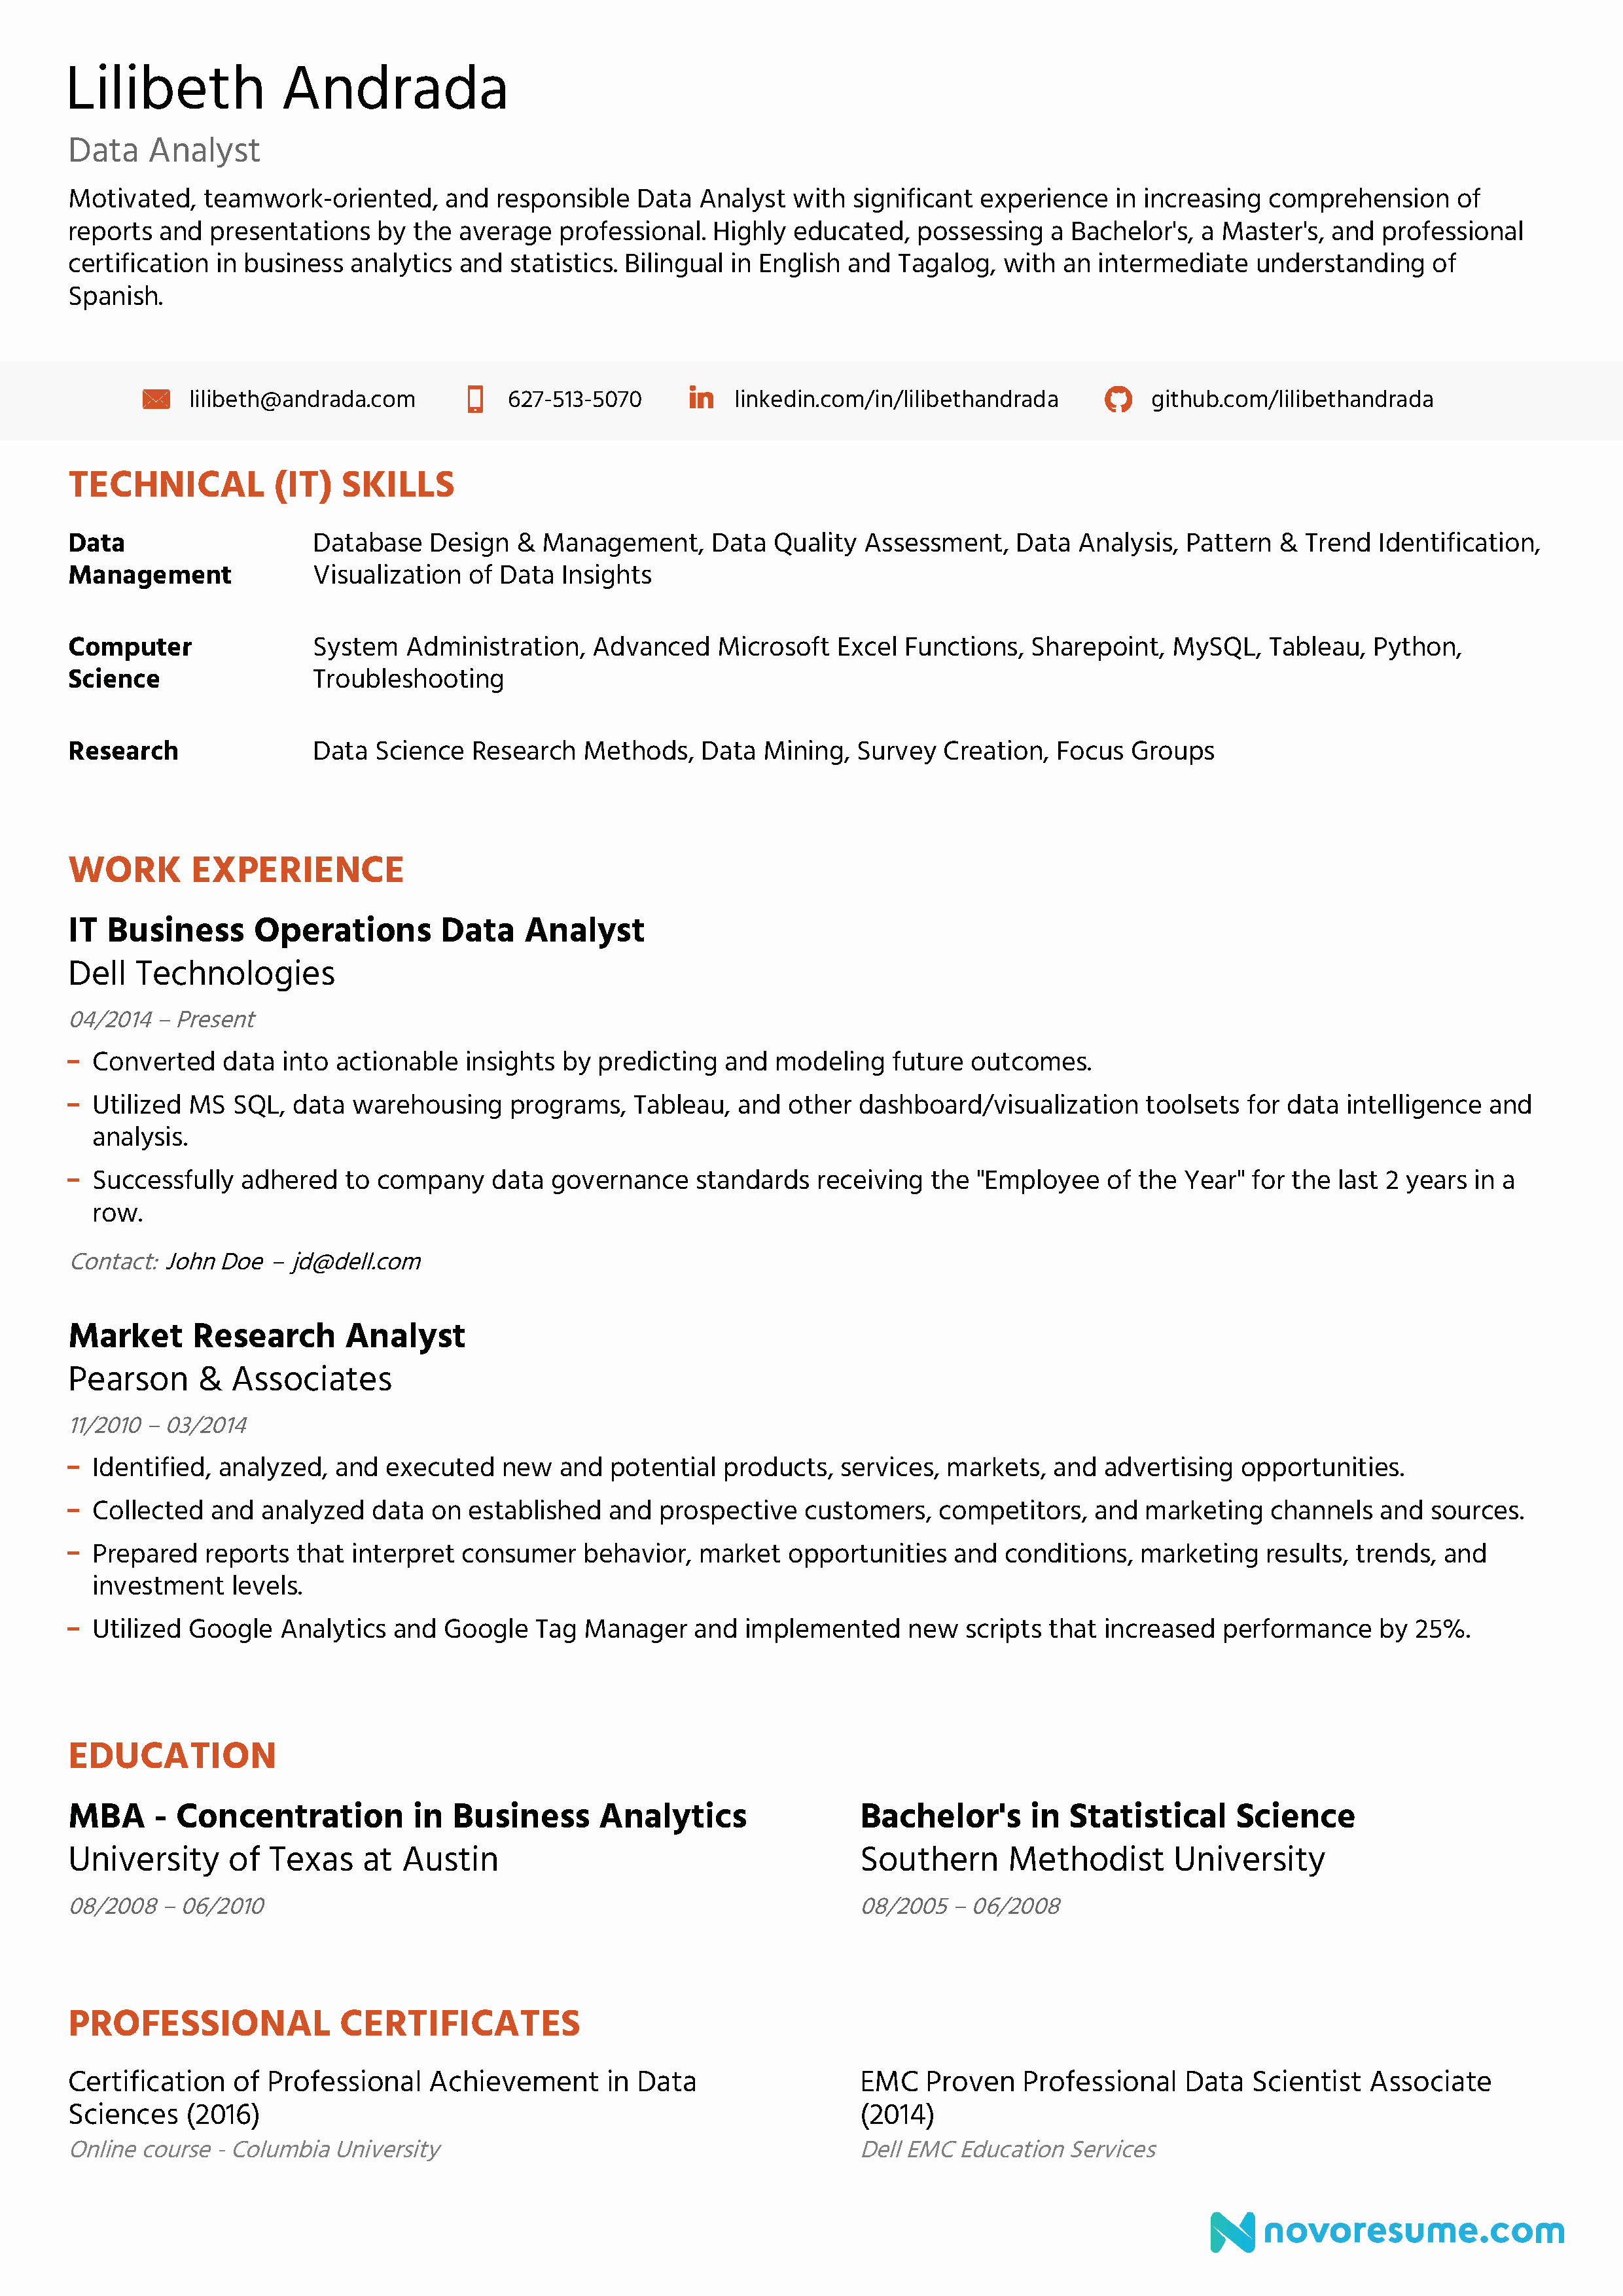 Data Analyst Resume [2019] Guide & Examples